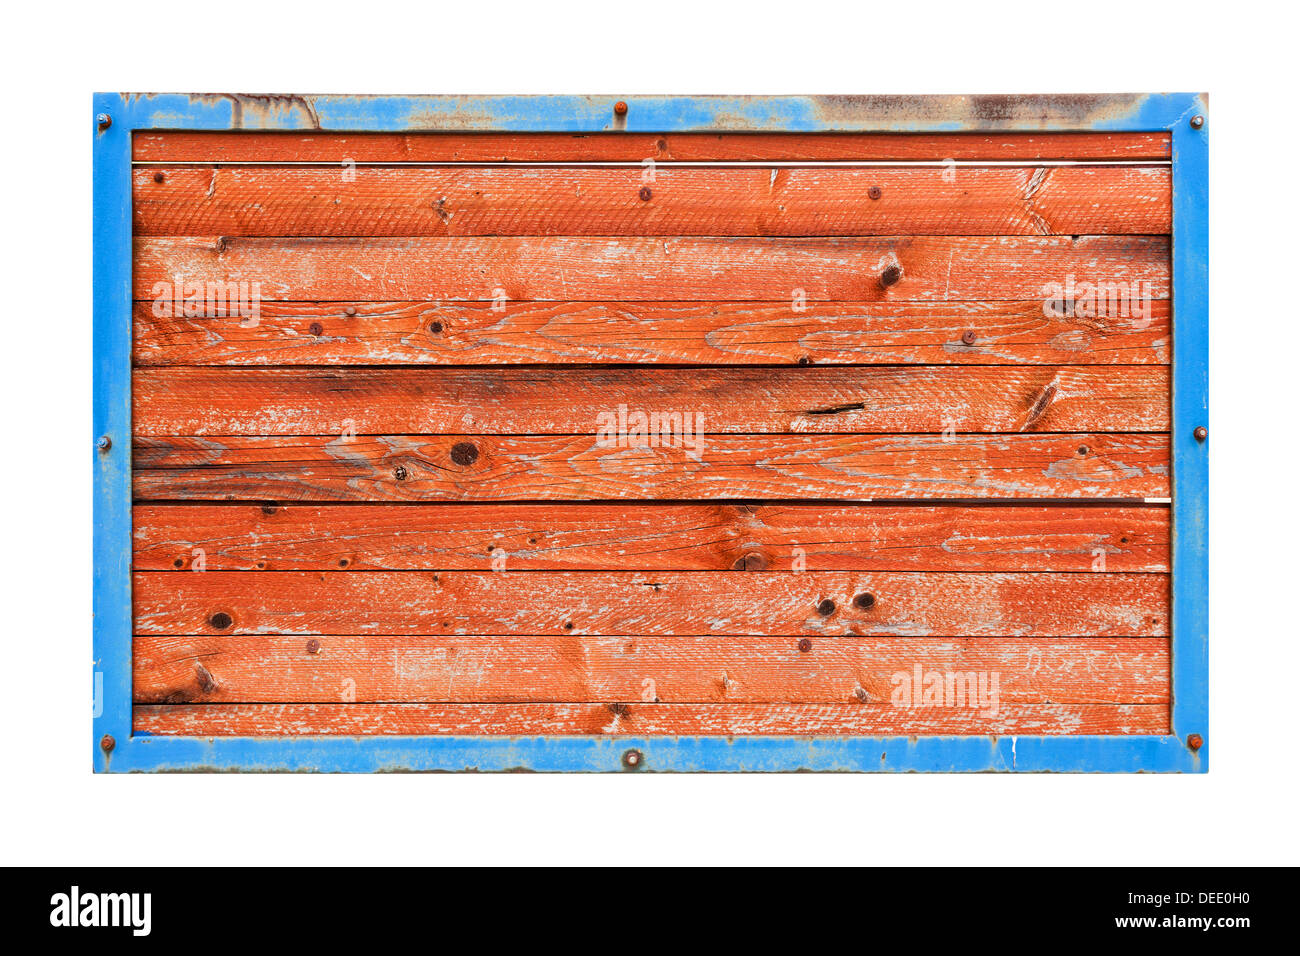 Red wooden boards in blue metal frame isolated on white - Stock Image